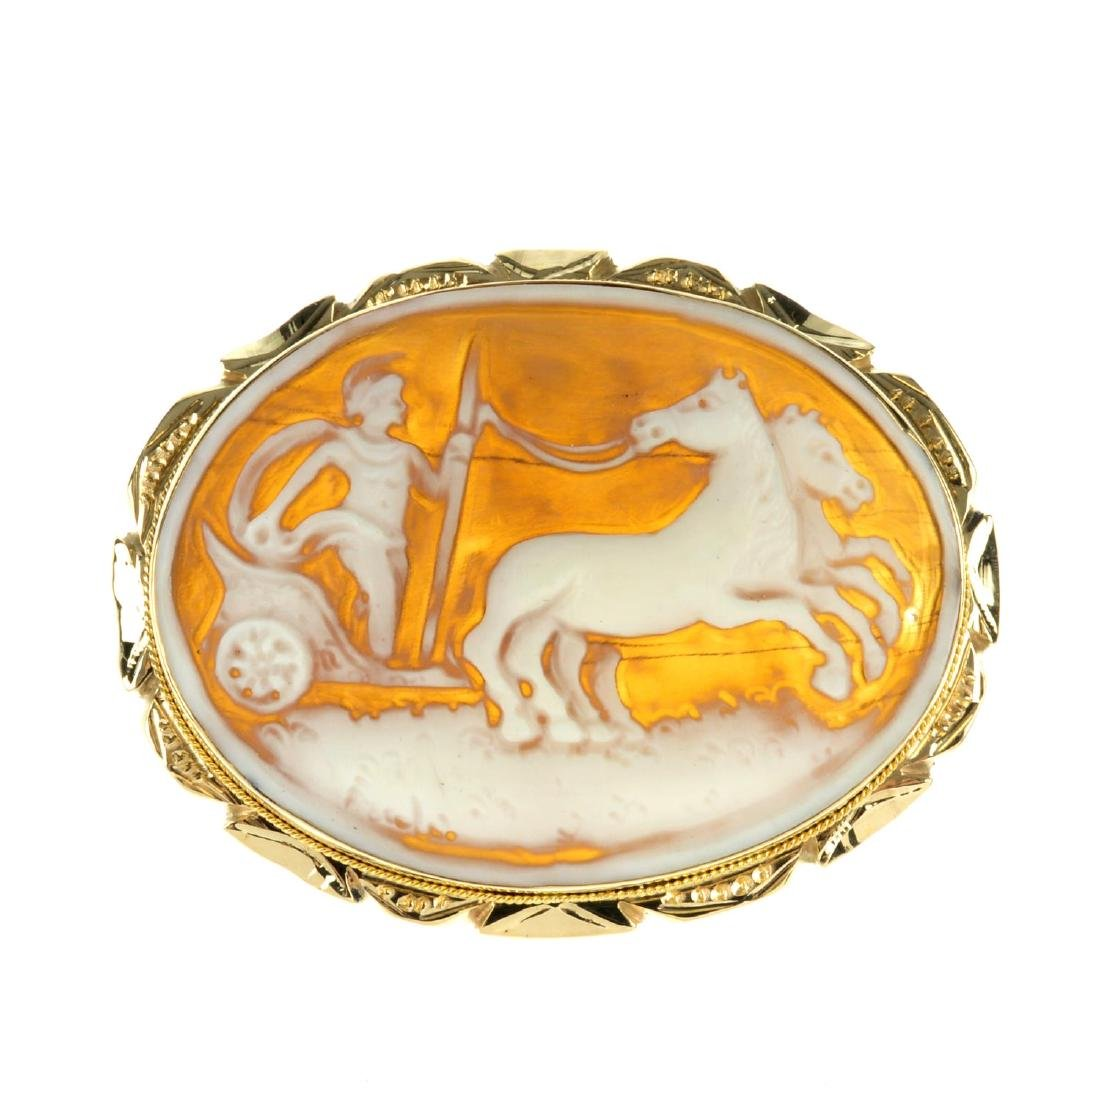 A 9ct gold cameo brooch and an 18ct gold cameo ring.